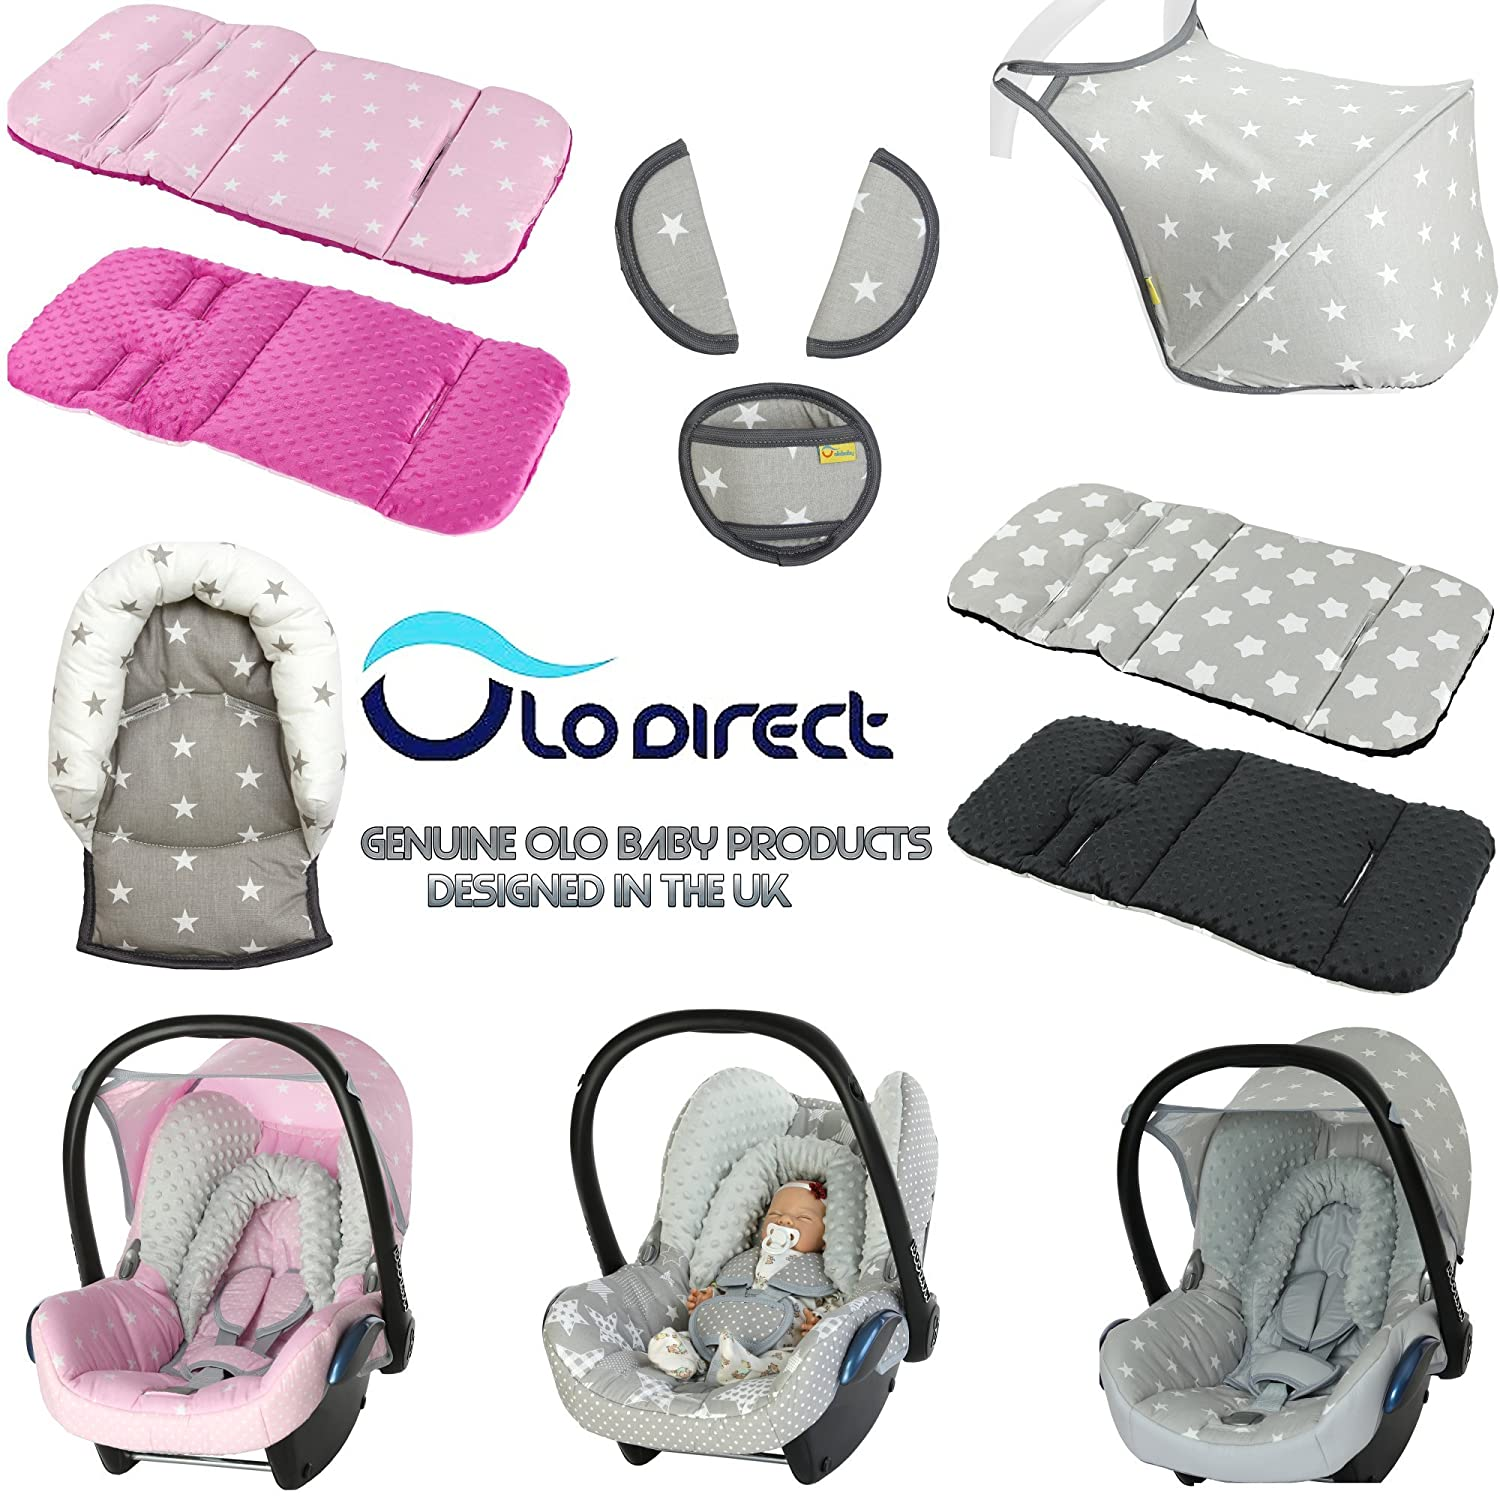 Universal Baby Stroller cosytoes Liner Buggy Luxury Padded Footmuff LG pink owl Cotton